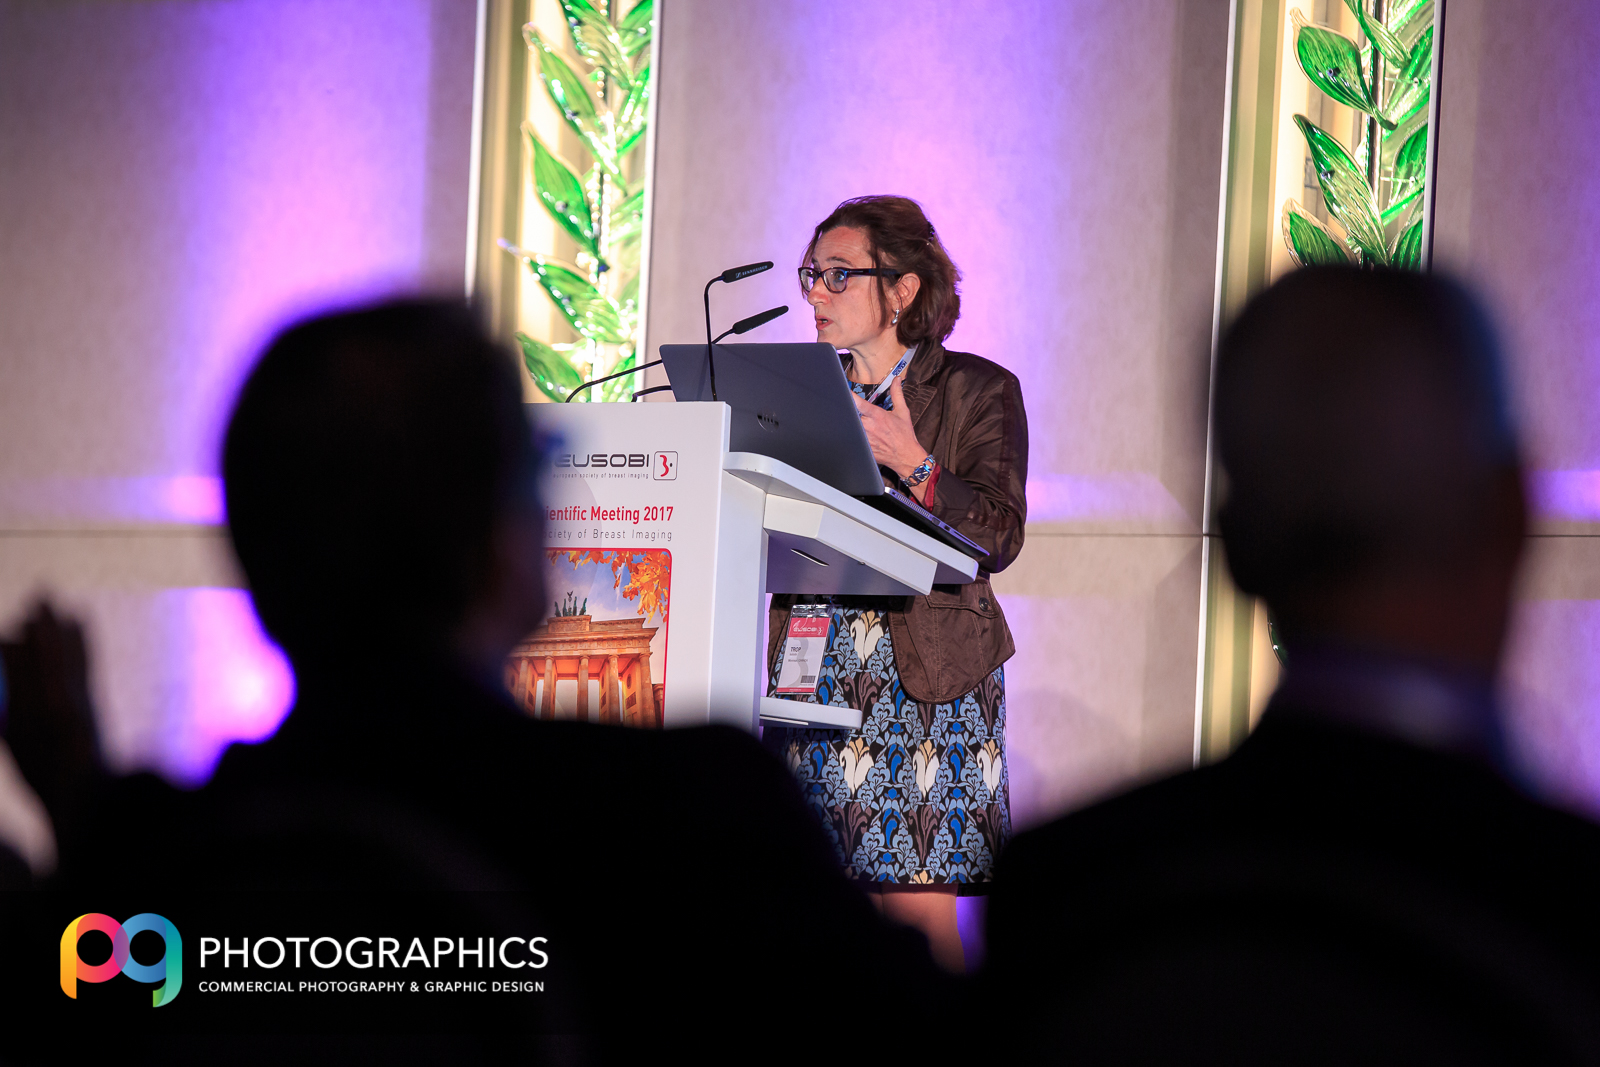 conference-event-photography-edinburgh-glasgow-berlin-7.jpg